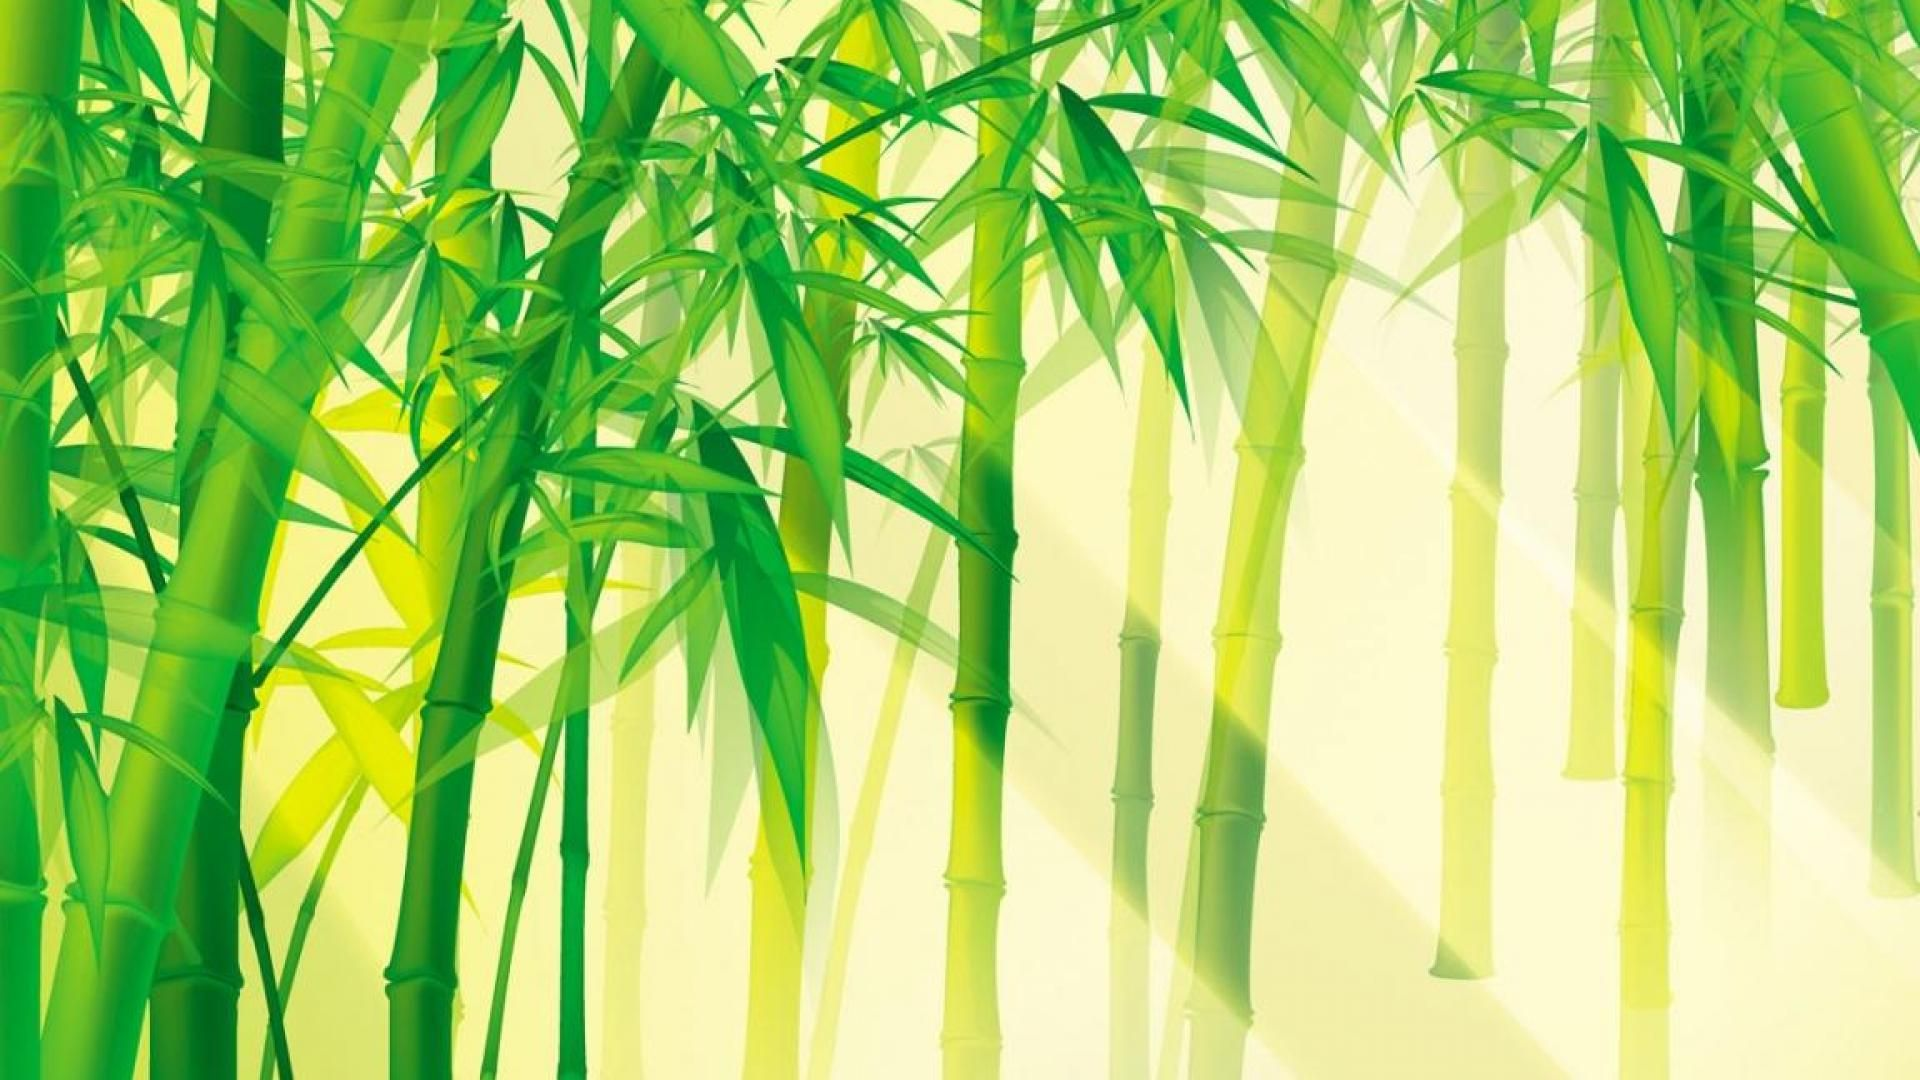 bamboo forest wallpapers wide with high resolution wallpaper